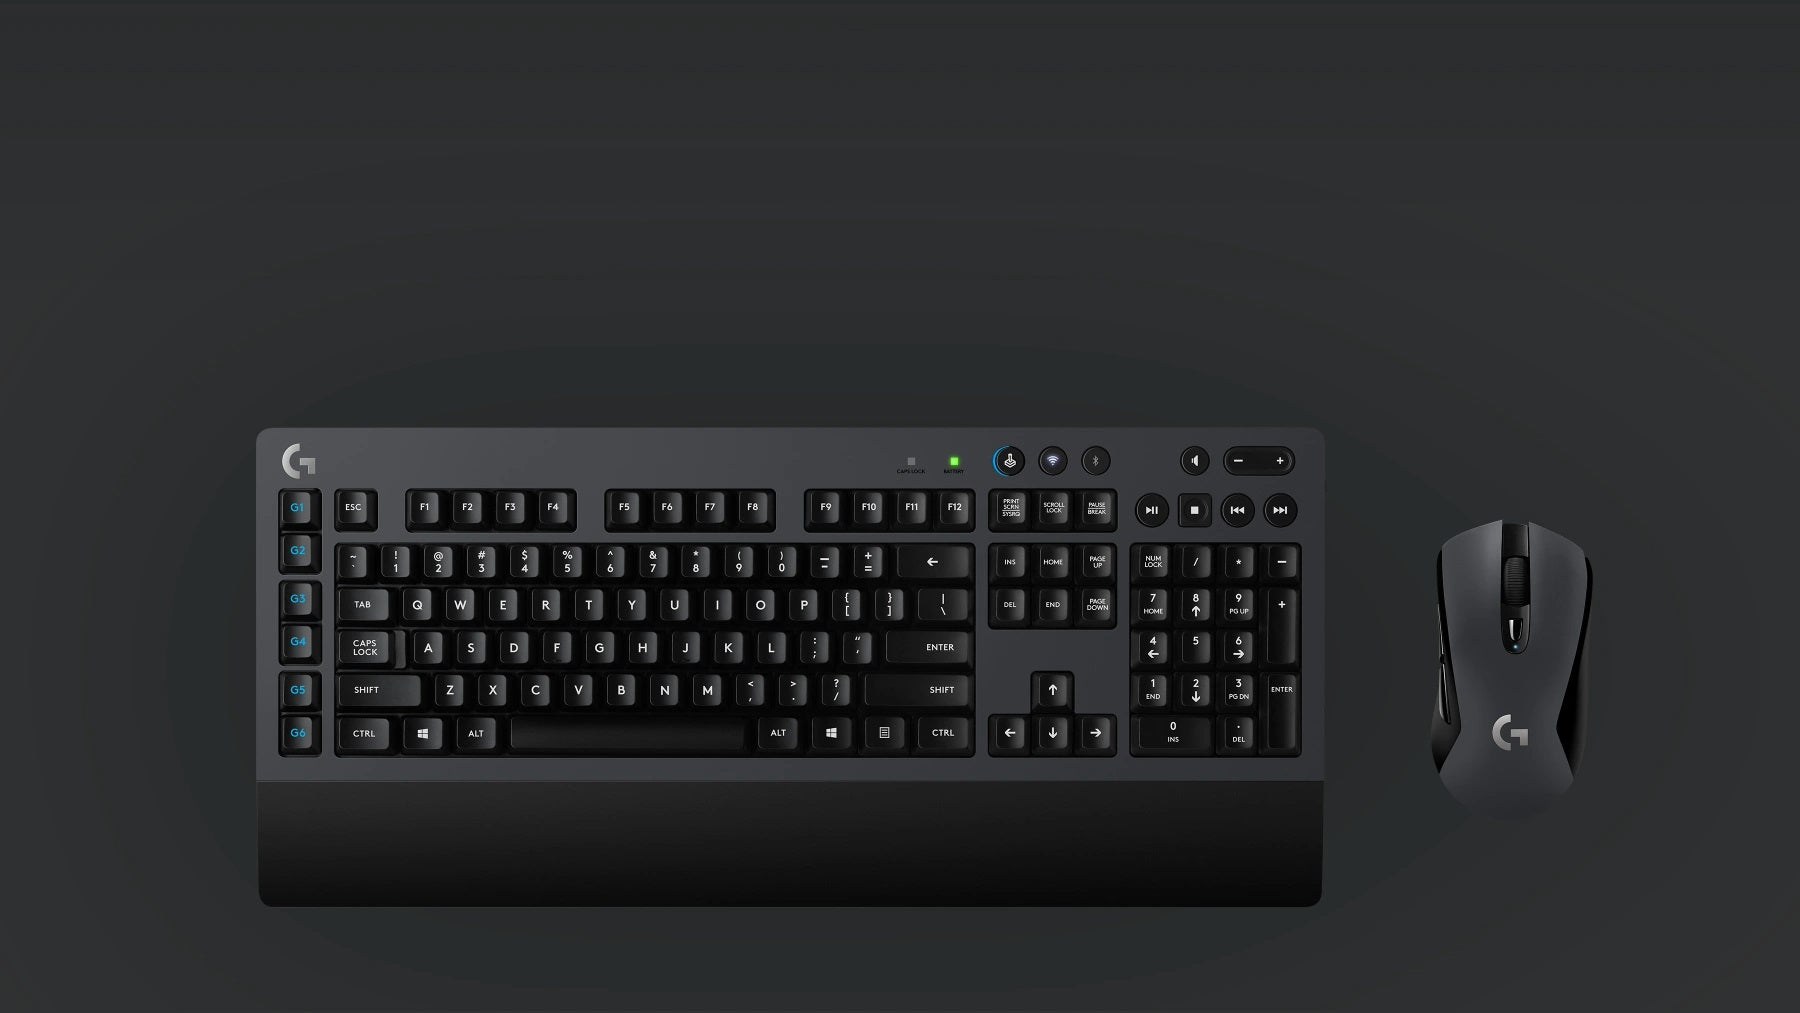 WIRELESS GAMING DESKTOP - Pair the G603 gaming mouse with the G613 wireless mechanical keyboard to acquire the complete wireless gaming desktop solution. G613 features advanced LIGHTSPEED wireless, Romer-G mechanical key switches, programmable G-keys, and more gaming features.